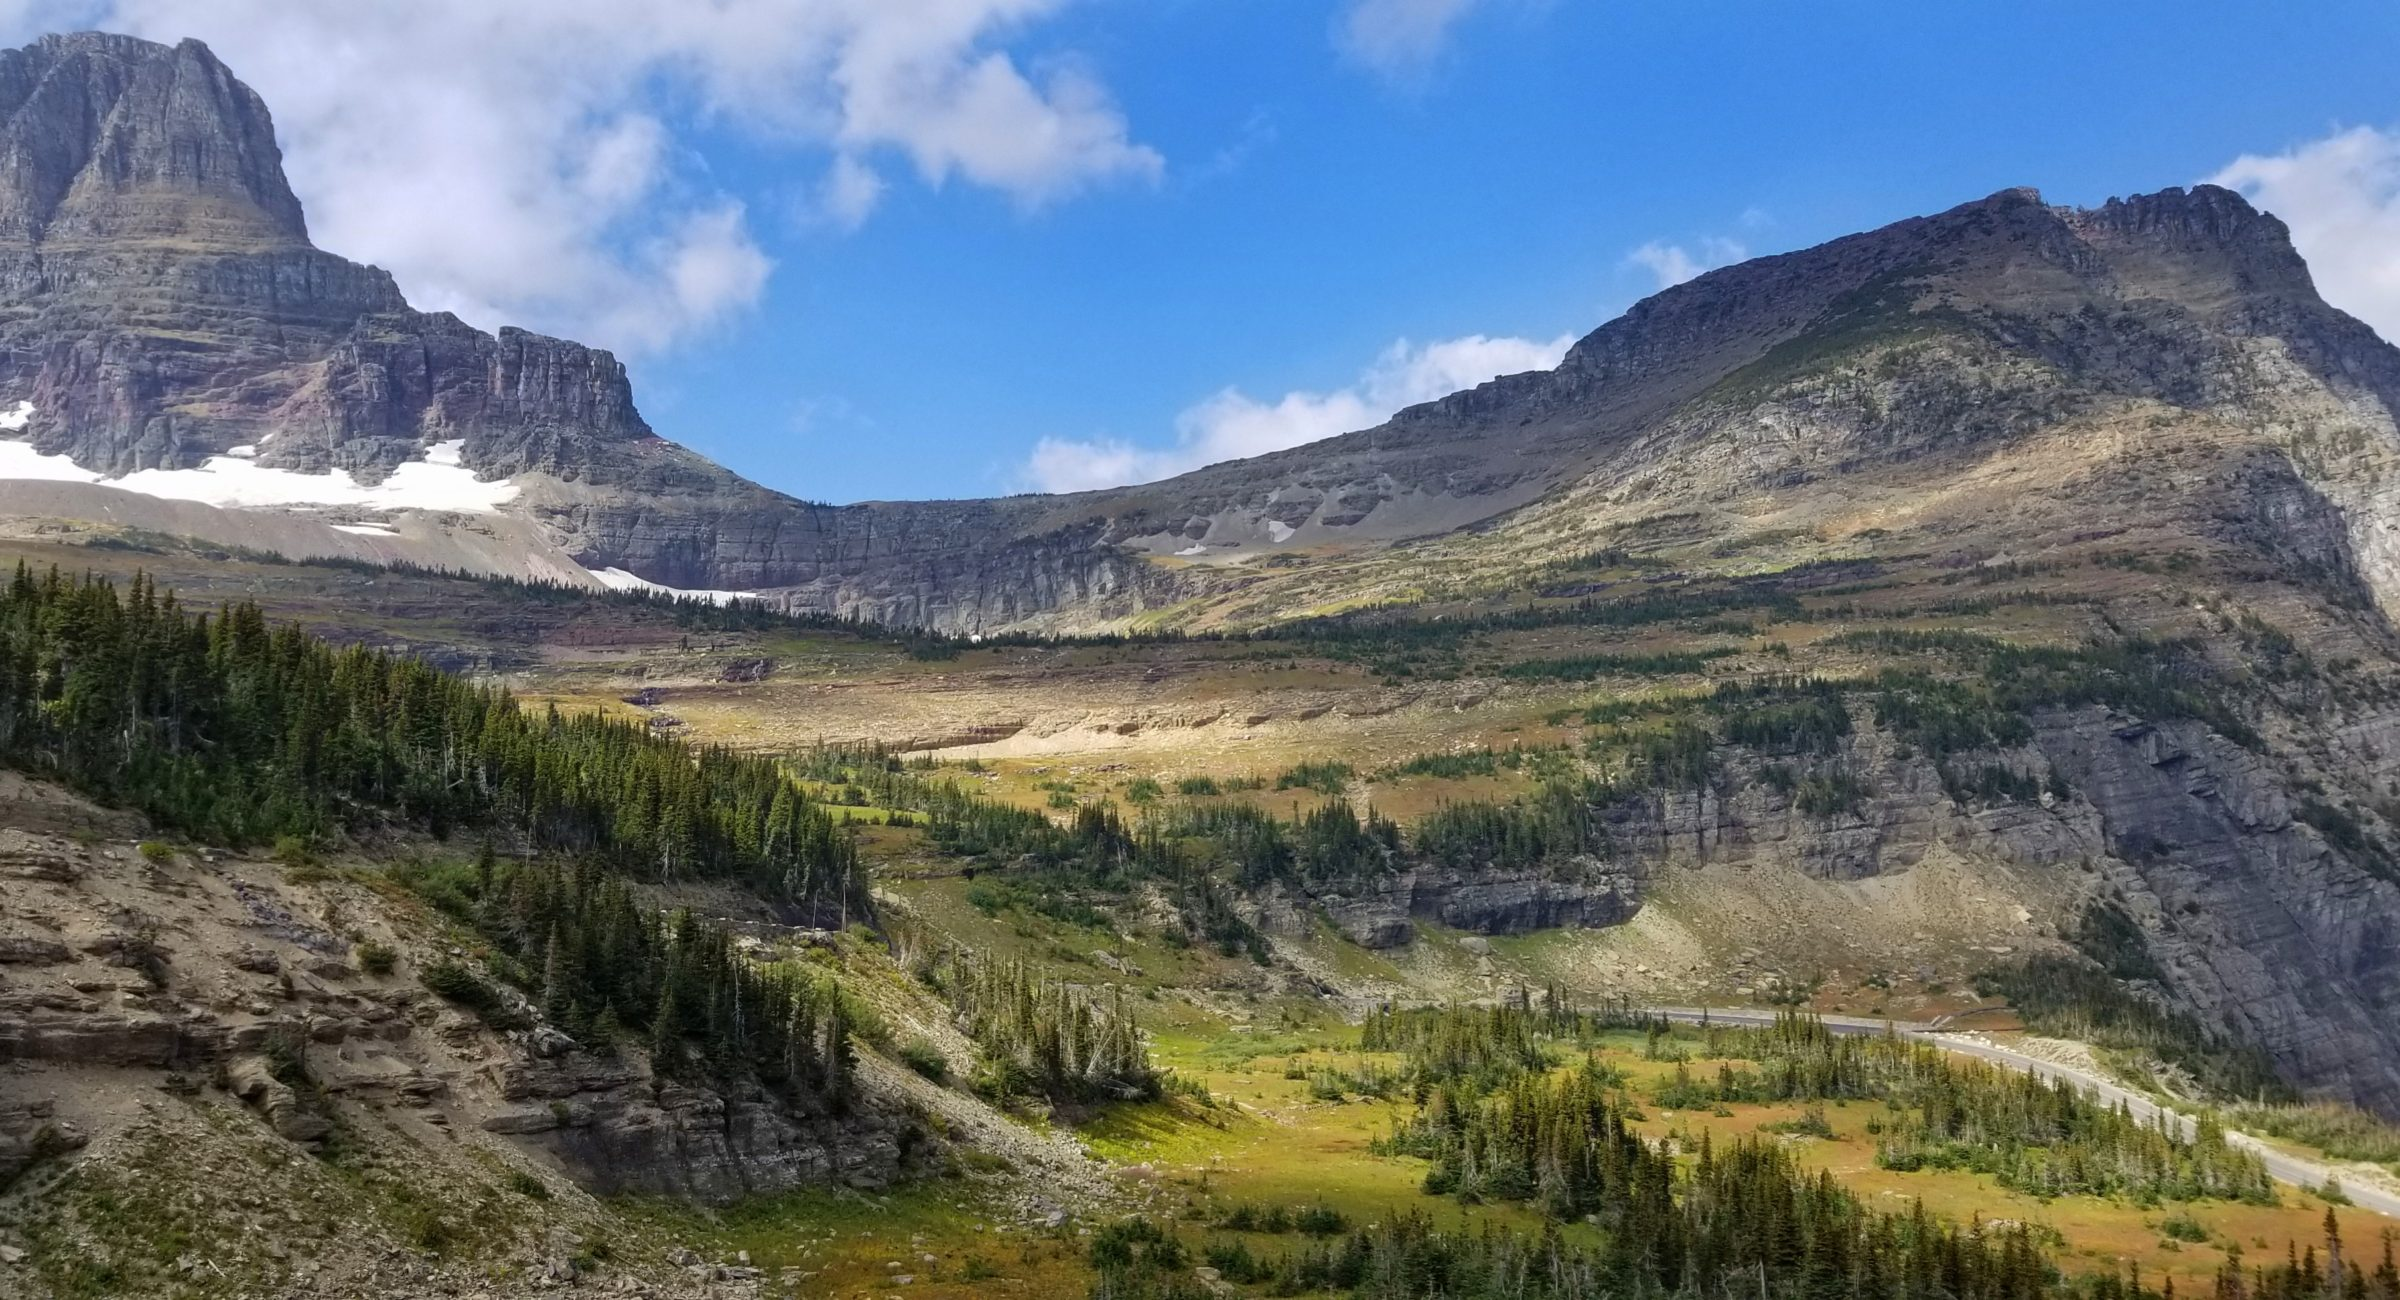 Glacier National Park is rugged and beautiful.